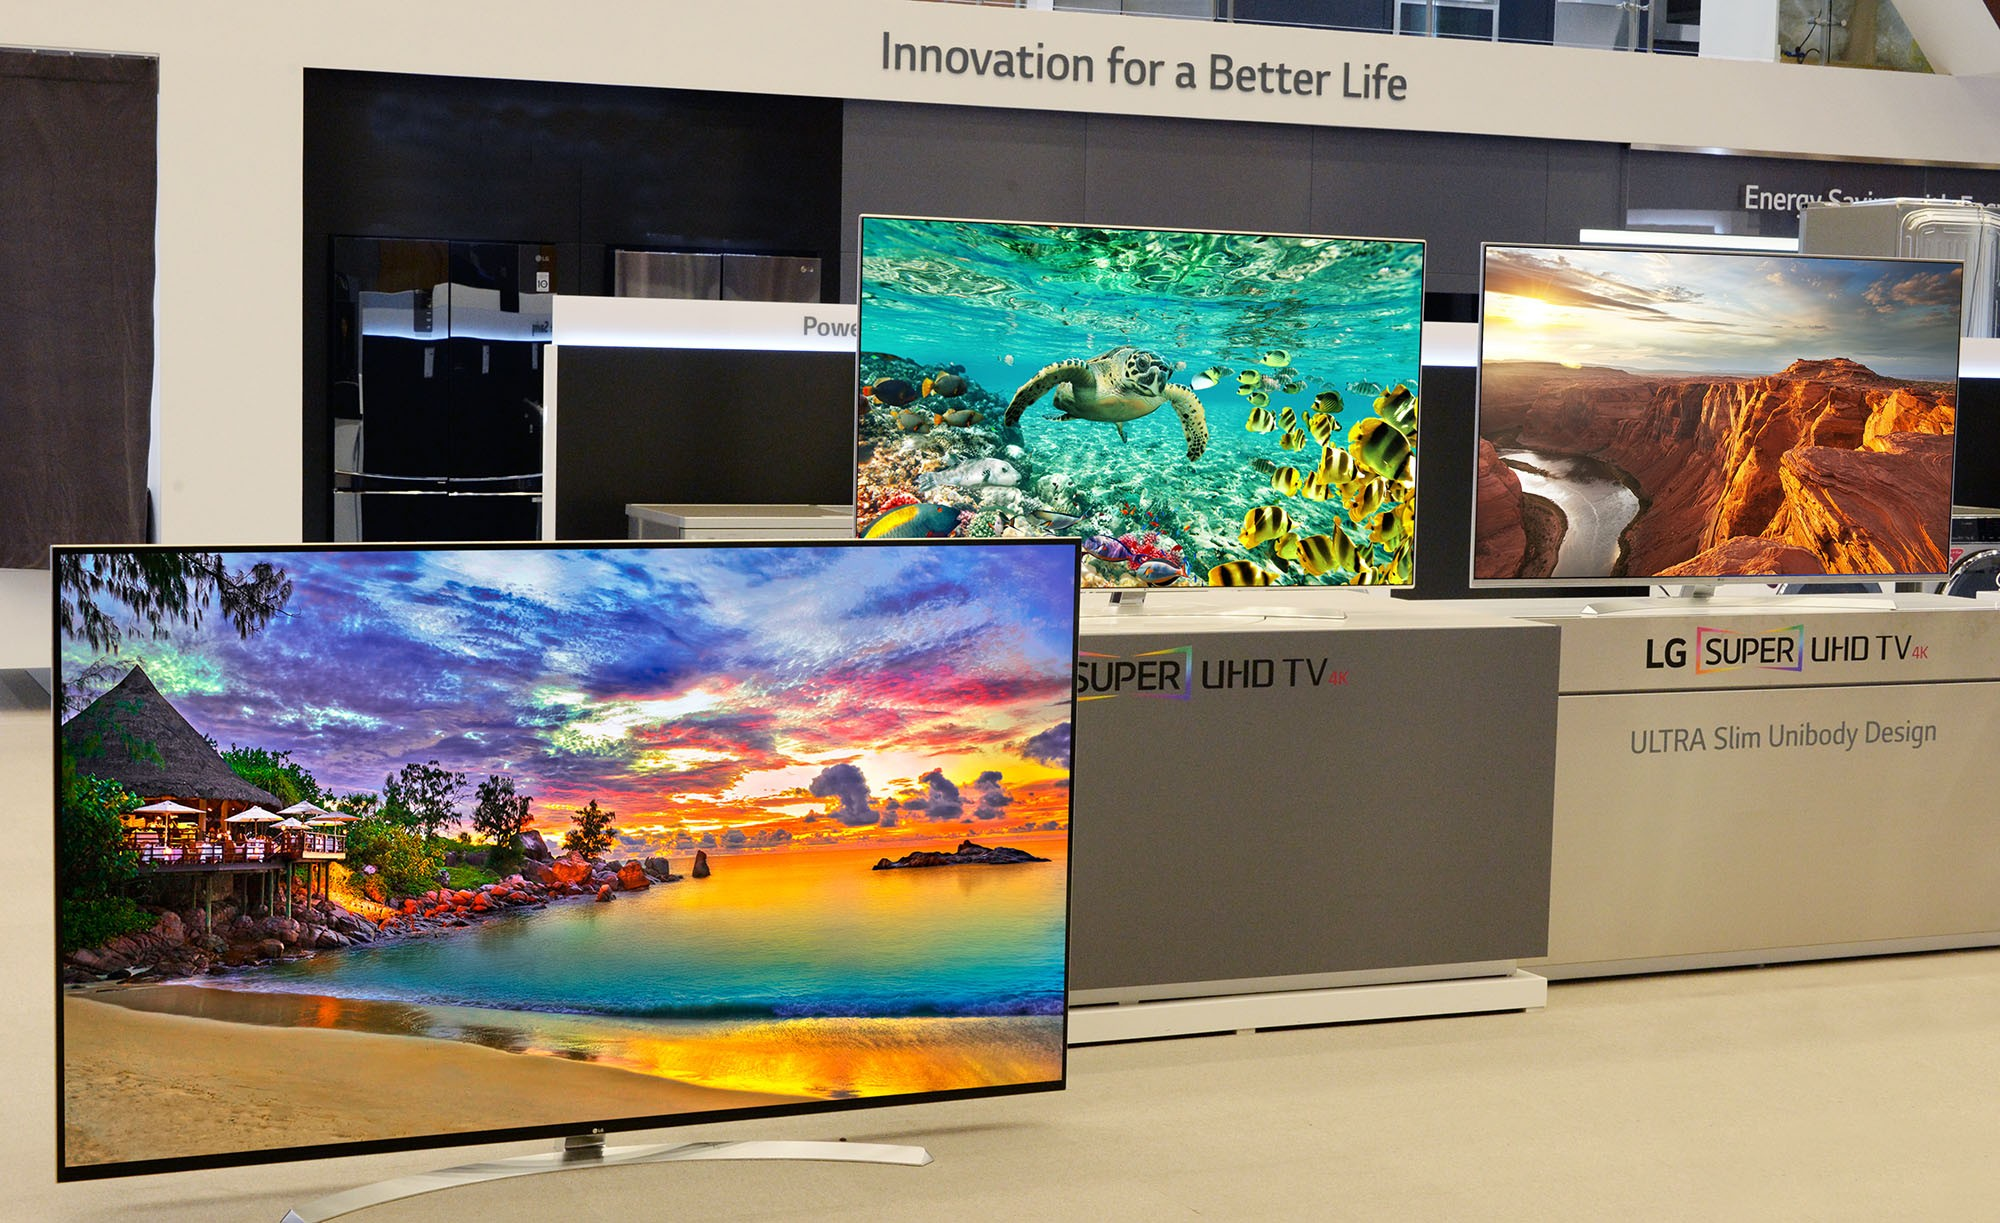 LG displaying its IPS TVs model 86UH9550, 65UH9500 and 65UH8500 at CES 2016